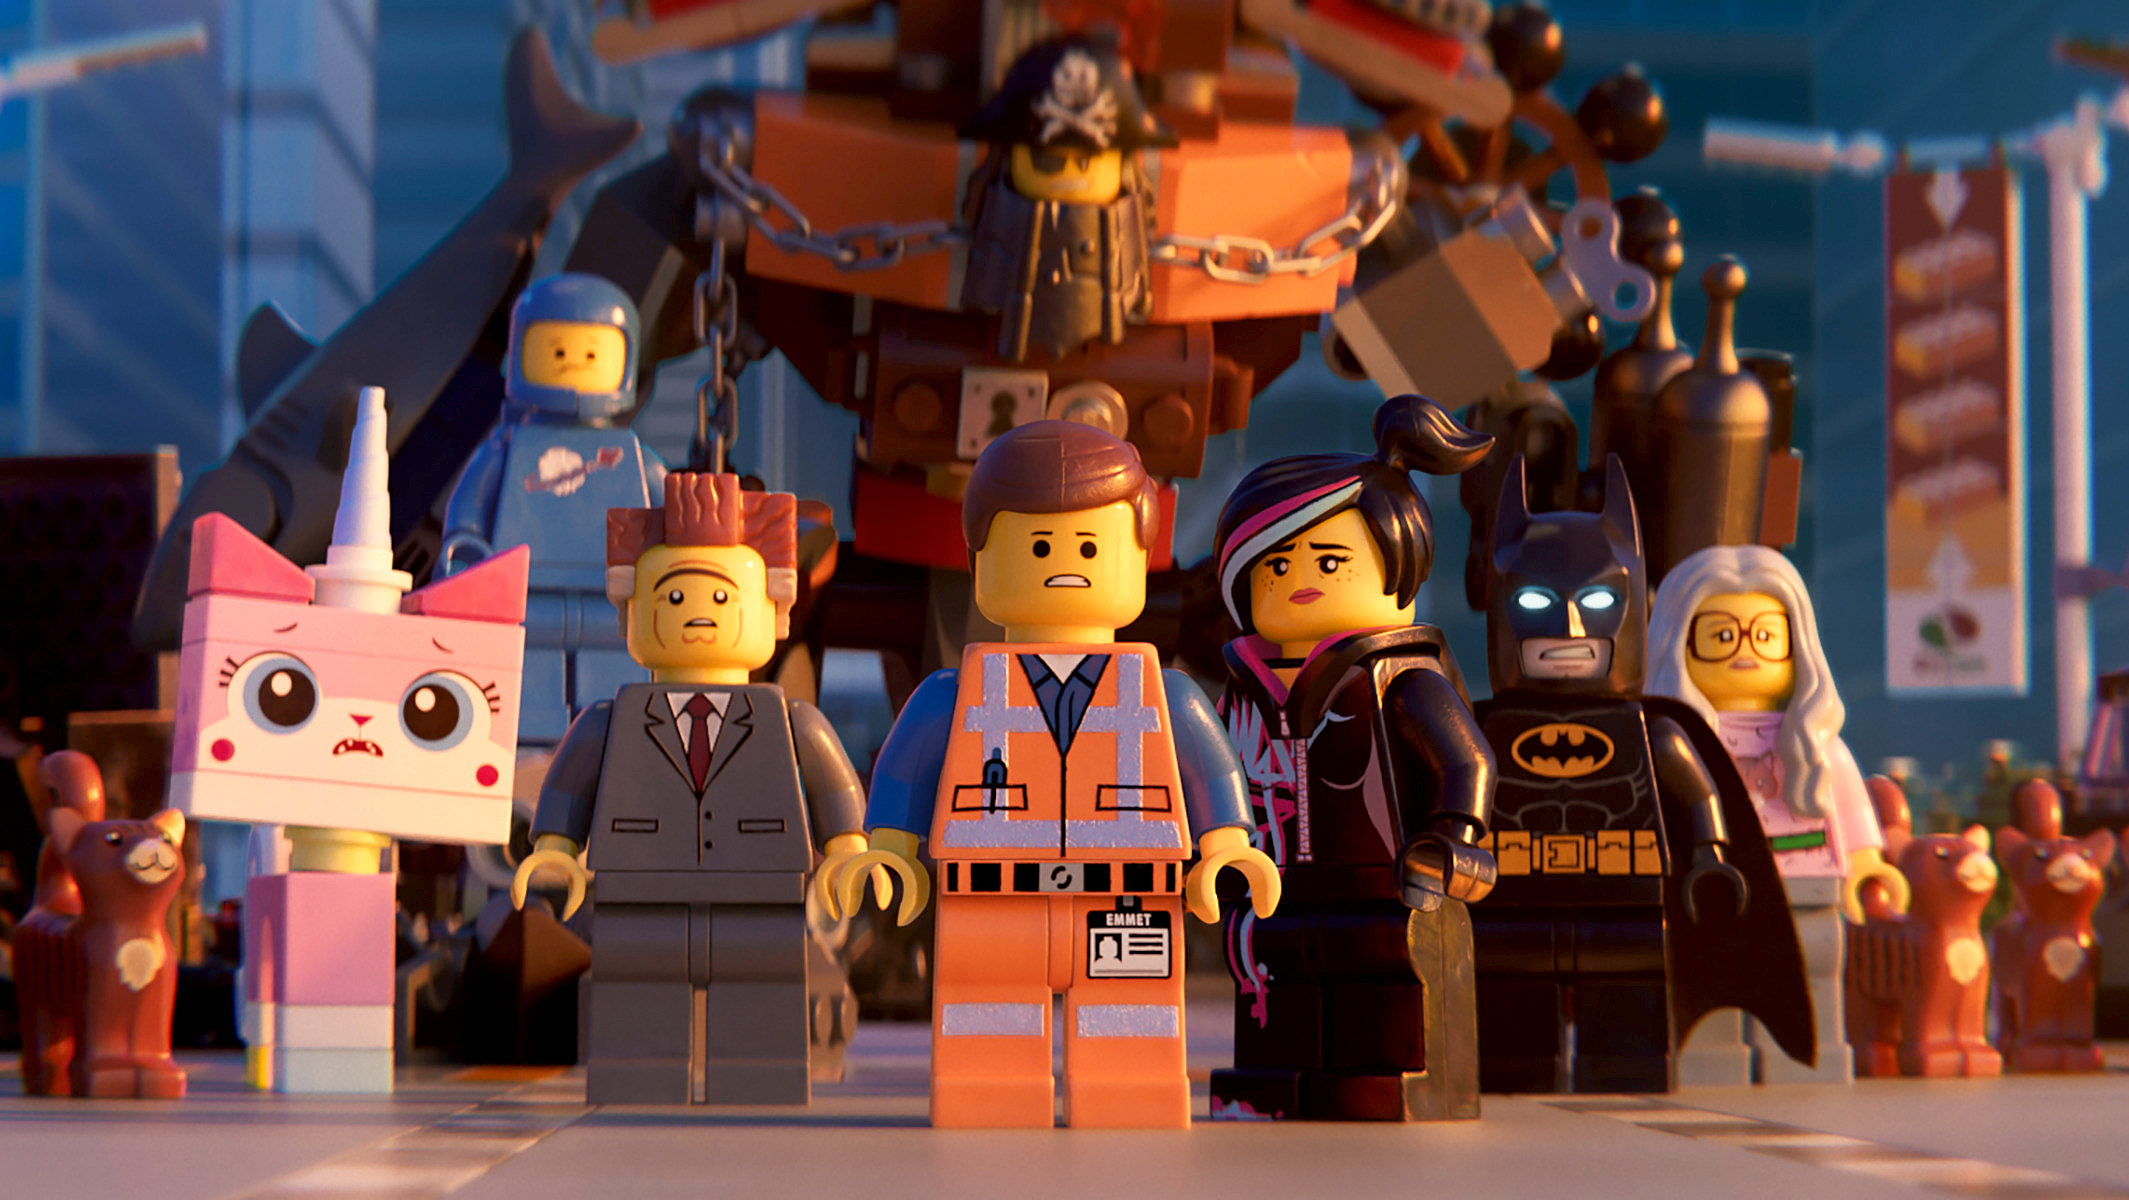 The Lego Movie 2 Is A Fun Funny Pop Culture Filled Warning About Growing Up Too Fast